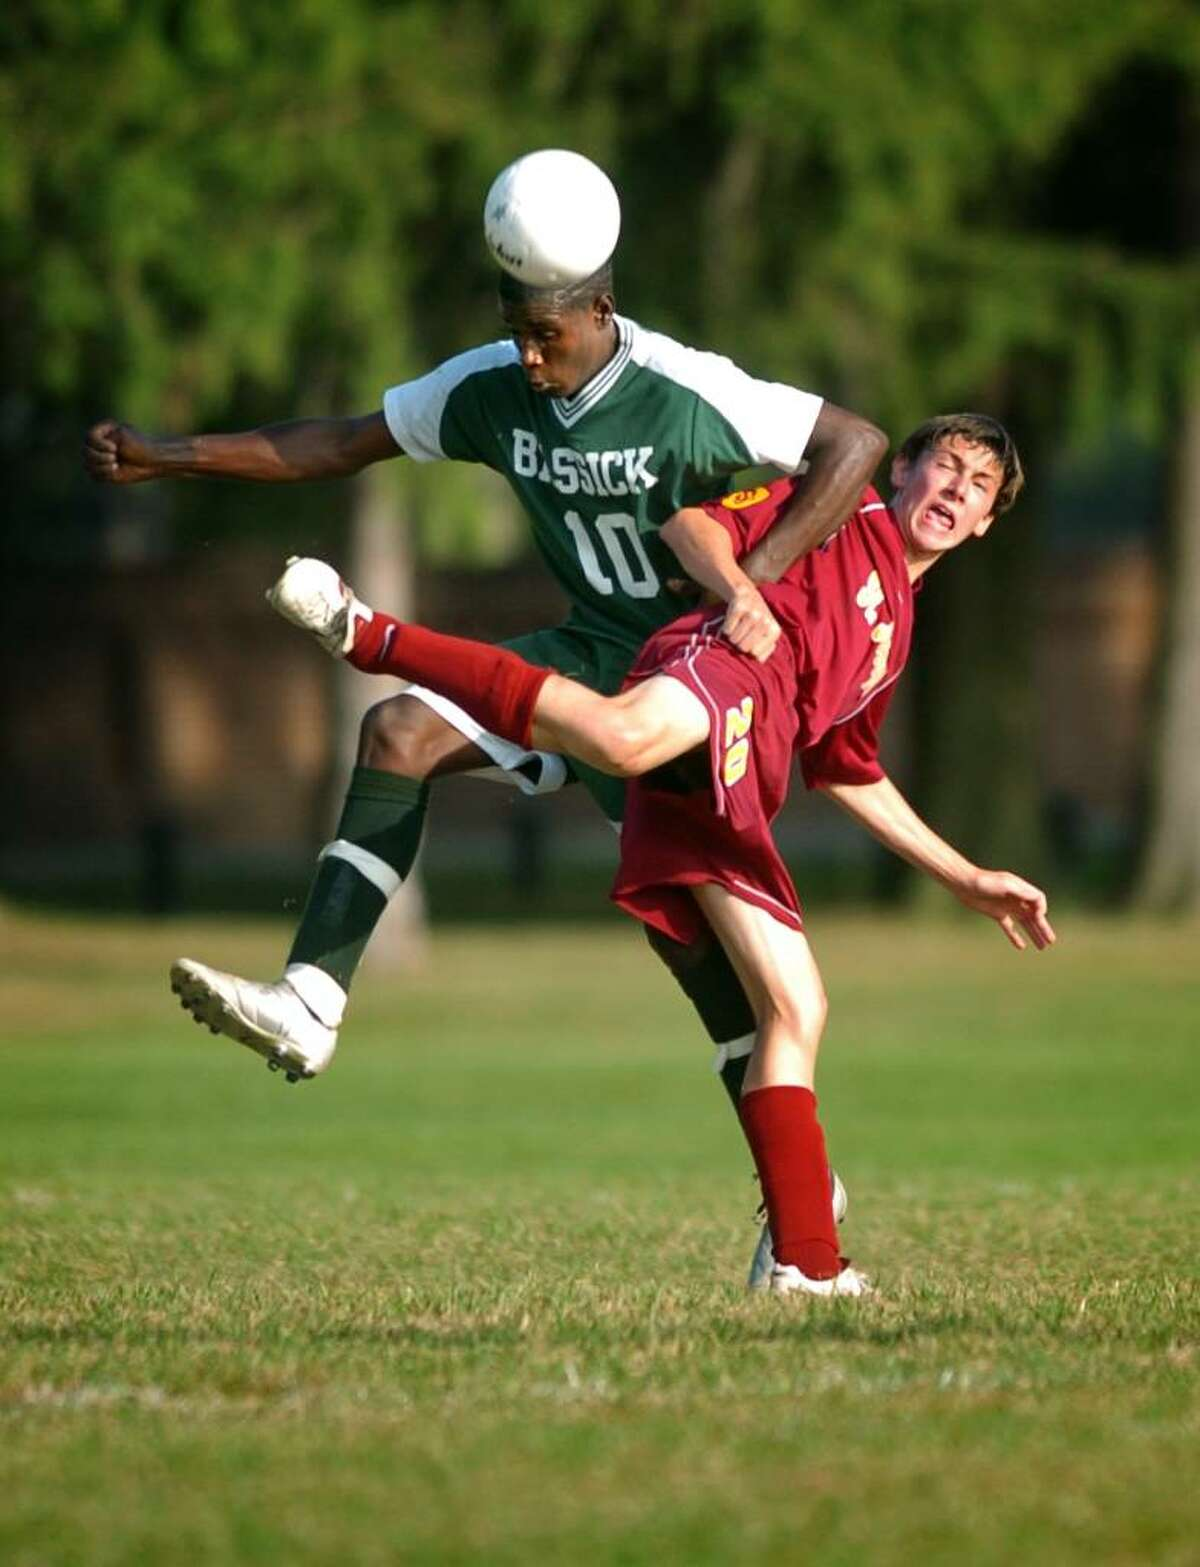 Bassick's Romaro Johnson and St. Joseph's Dan Gallagher battle for the ball during the first half of Wednesday's game at Seaside Park in Bridgeport, Conn.